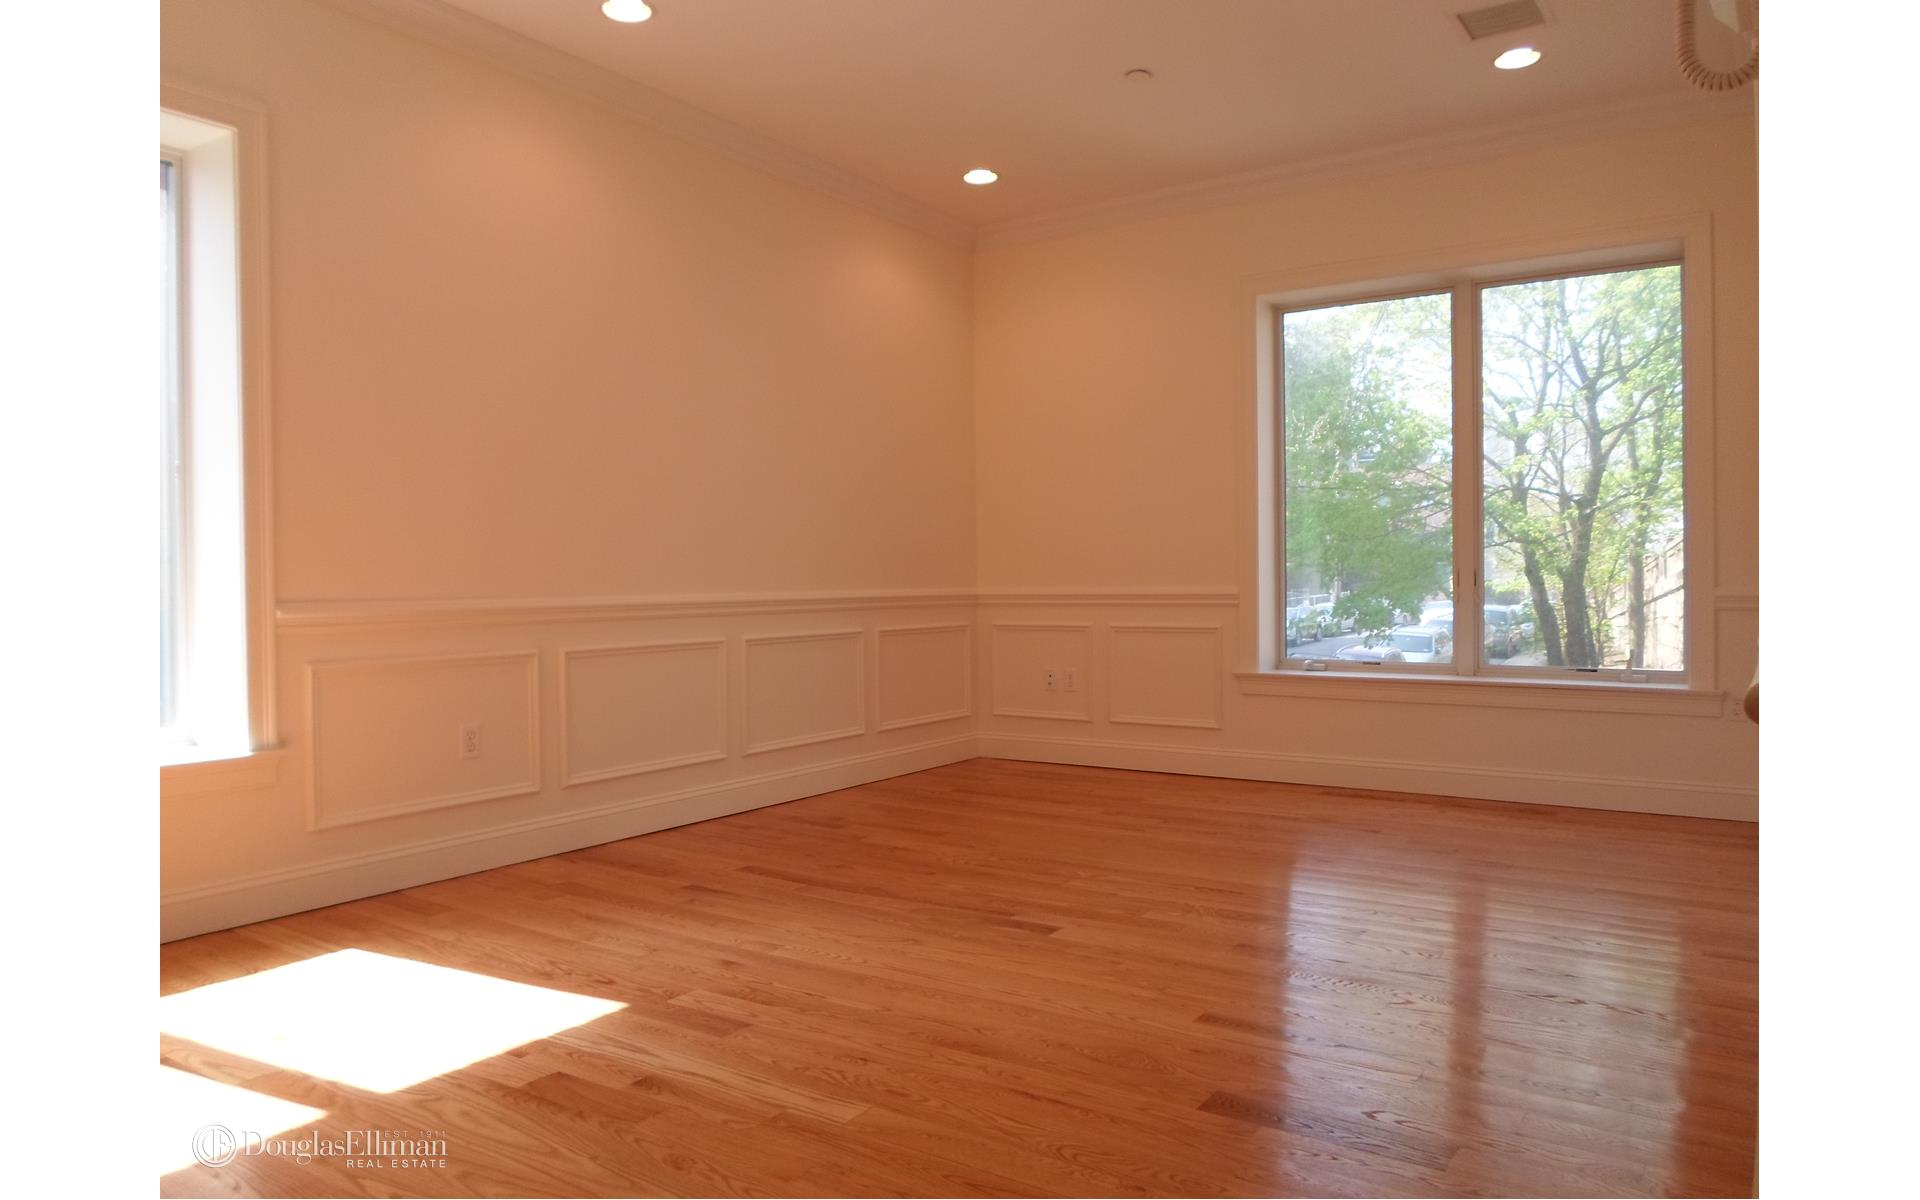 New York Roommate Room For In Bronx 2 Bedroom Apartment